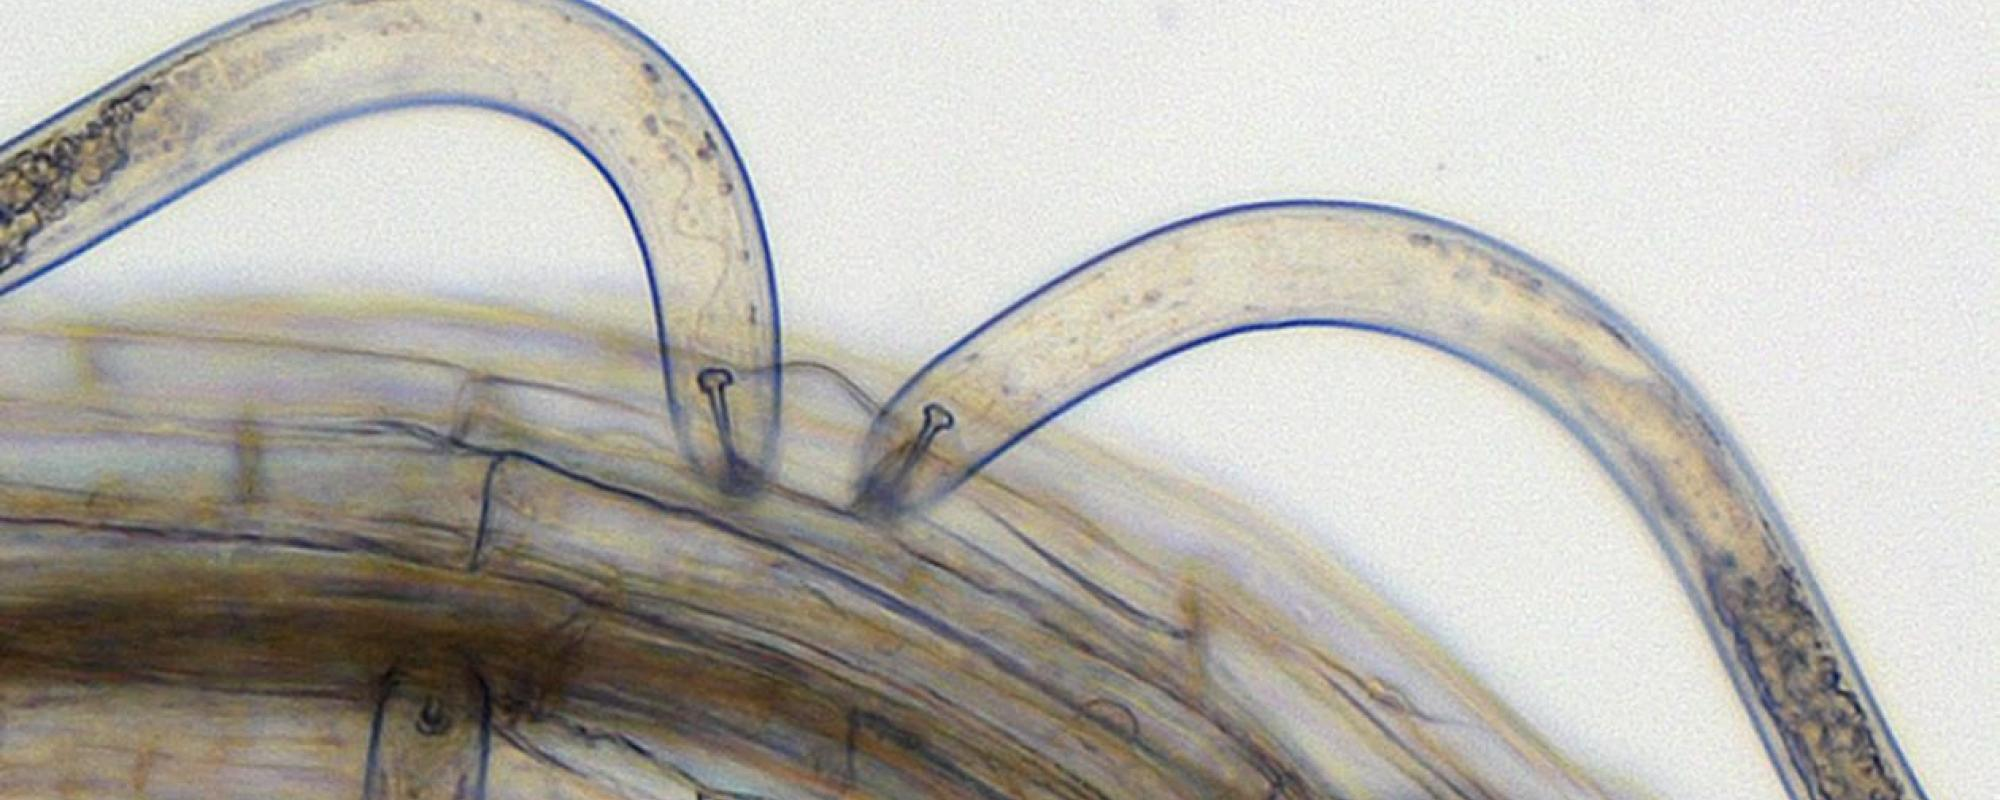 Cyst nematodes infecting A. thaliana root tissue